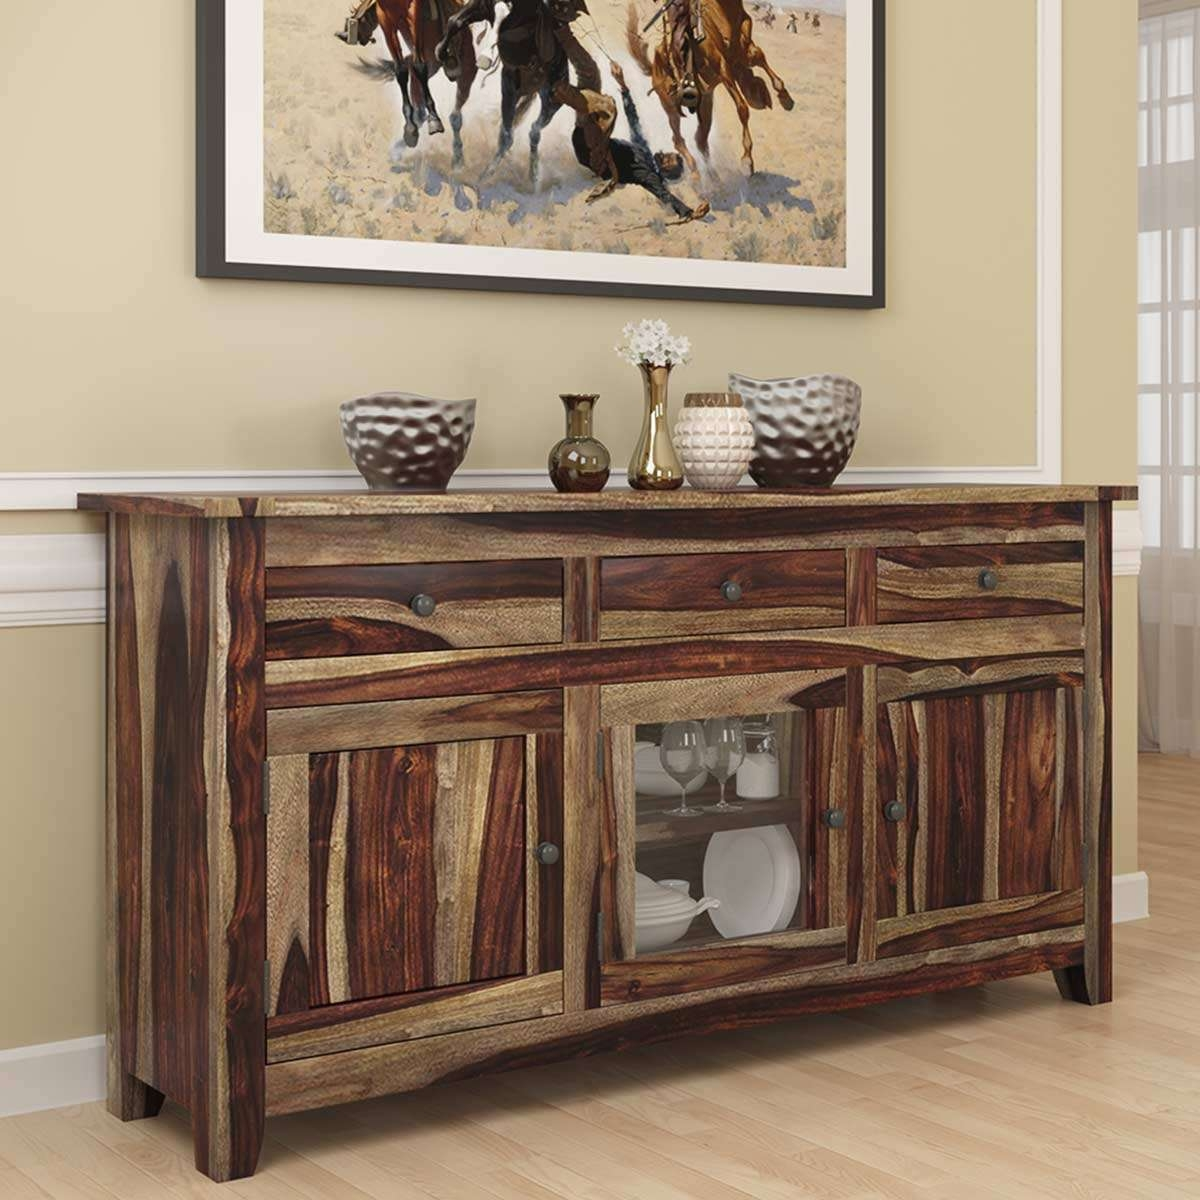 Rustic Buffets Sideboards Intended For Rustic Buffet Sideboards (View 5 of 20)